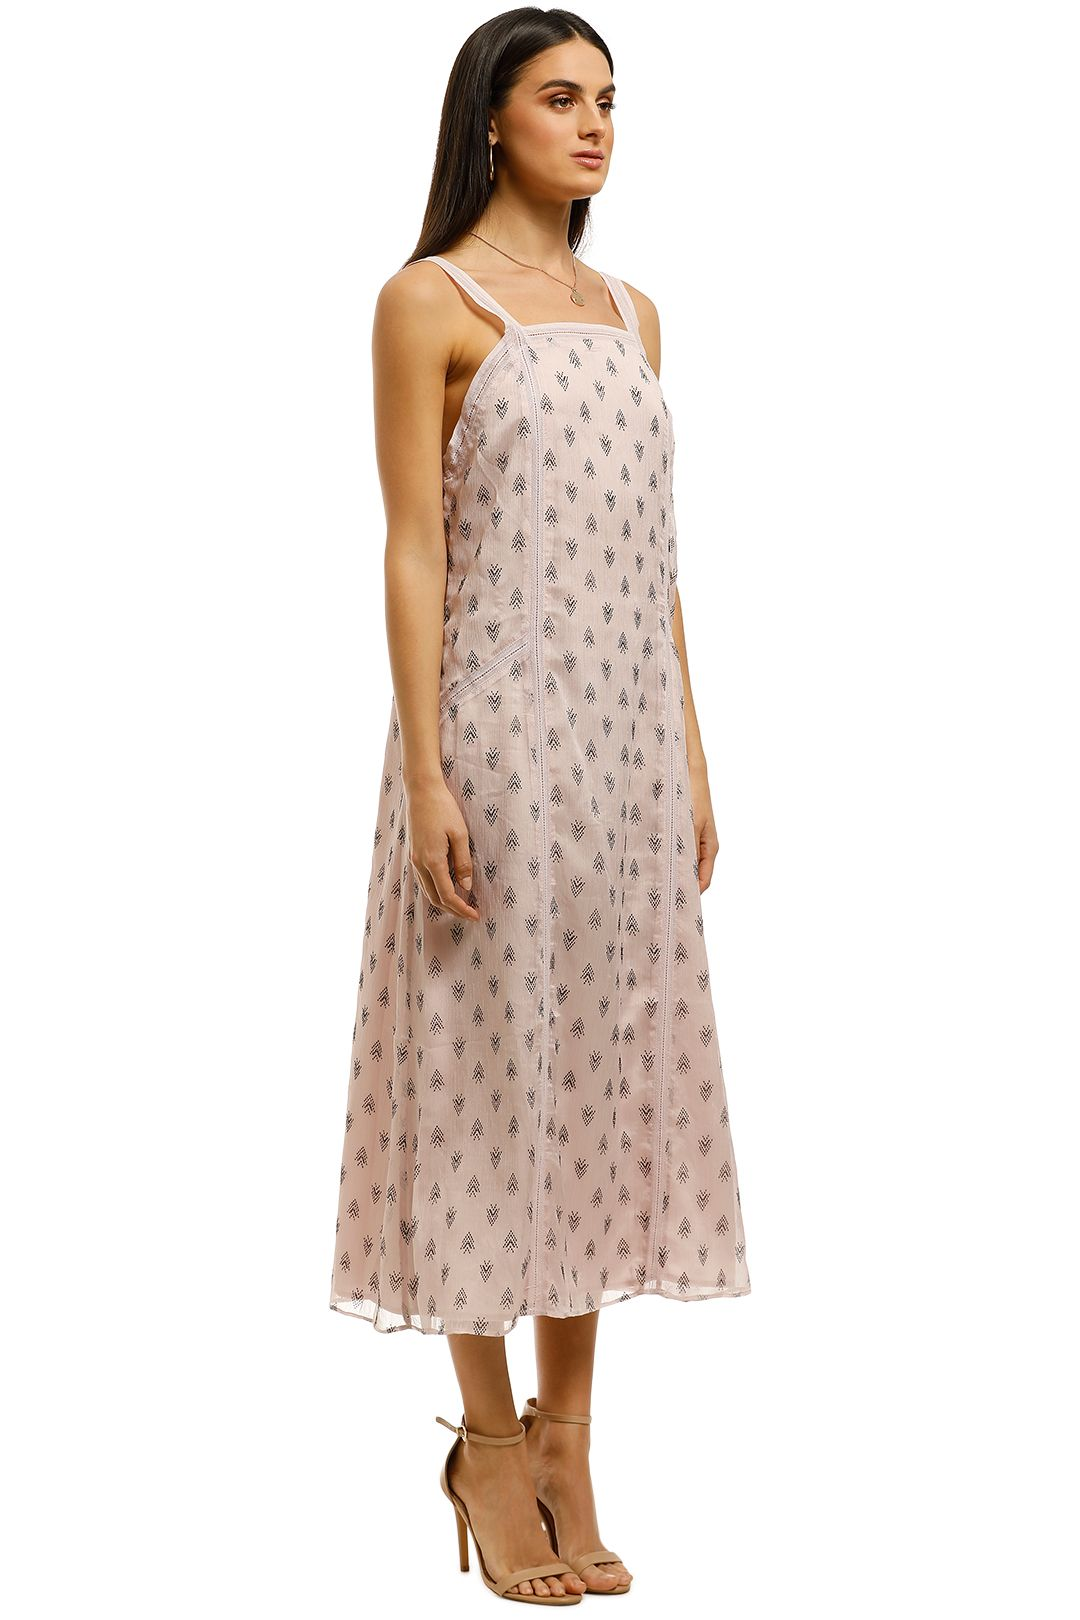 Stevie-May-On-Hold-Midi-Dress-Pink-Side